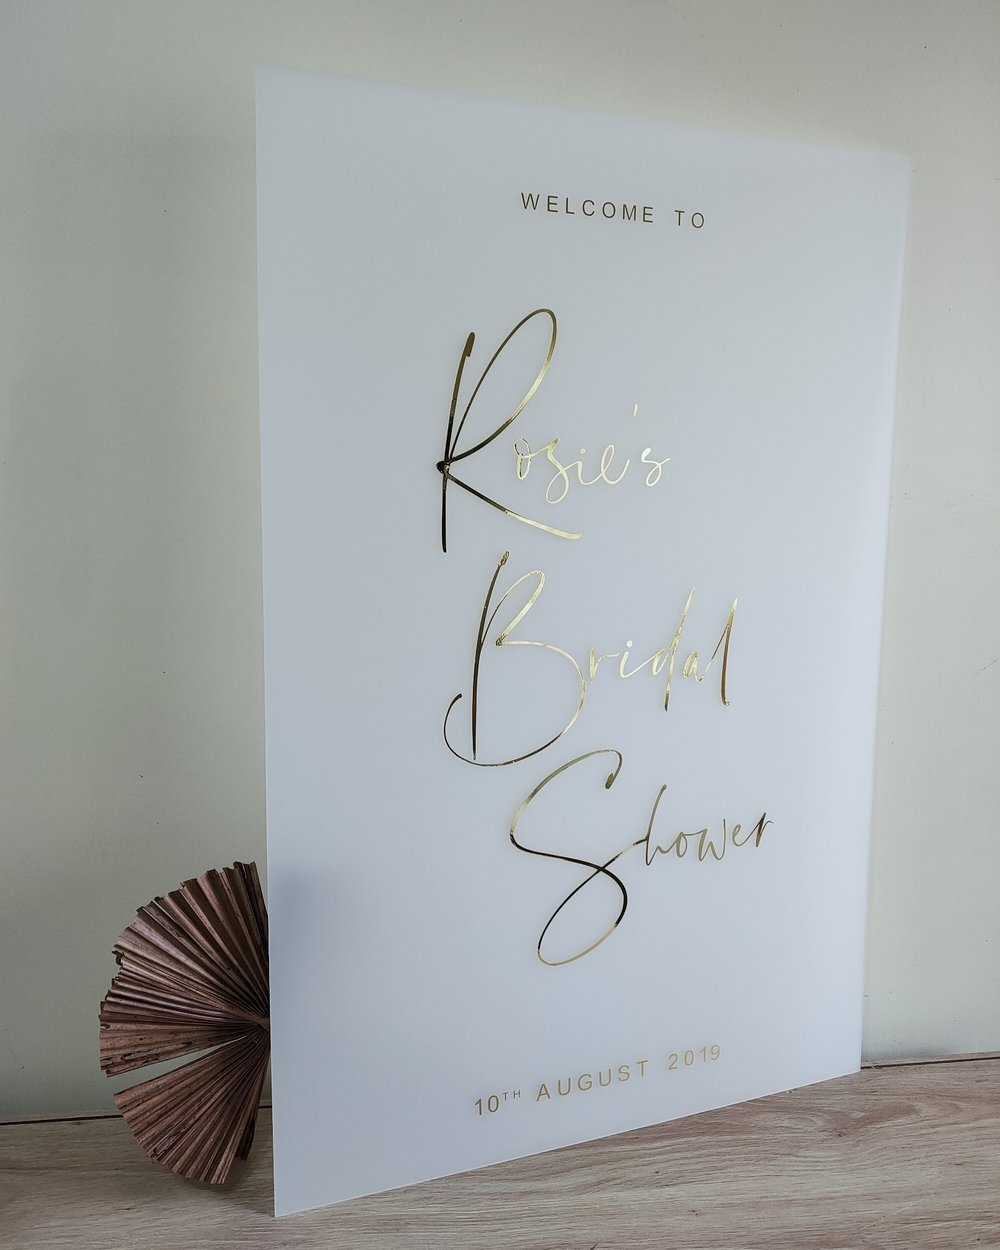 White Frosted Acrylic Wedding Welcome Sign with Gold or Rose Gold Vinyl Lettering